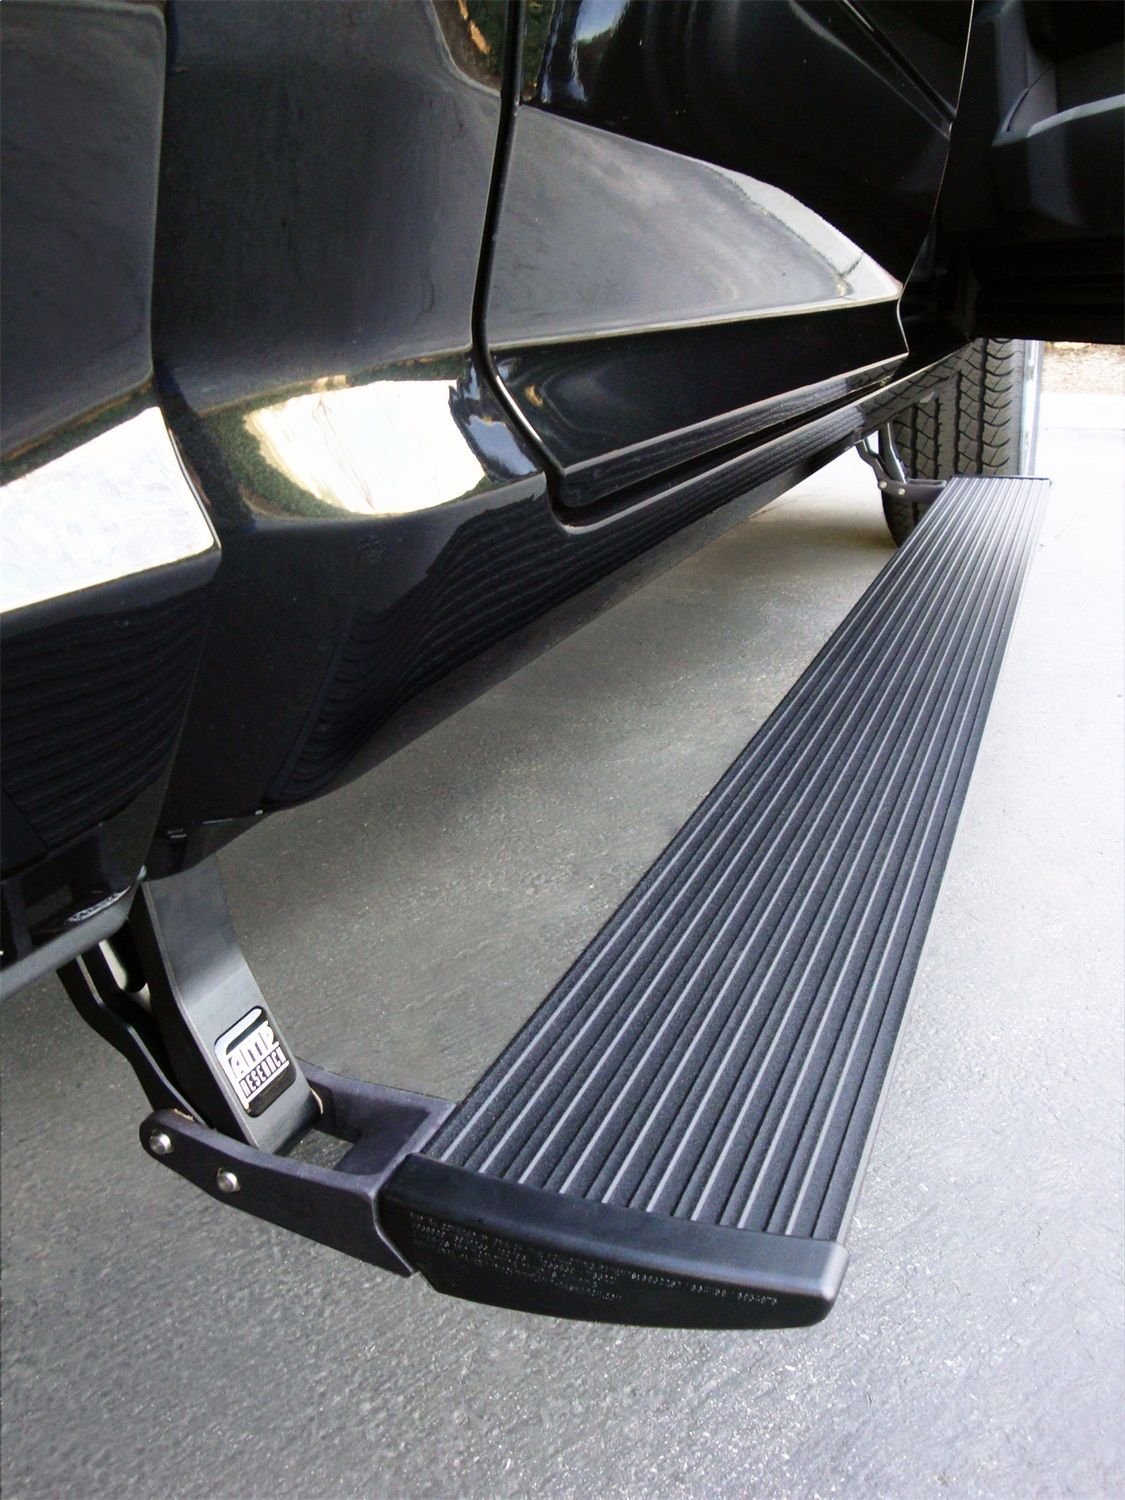 Diesel Only AMP Research 76243-01A PowerStep Electric Running Boards Plug N Play System for/2019 Ram 2500//3500